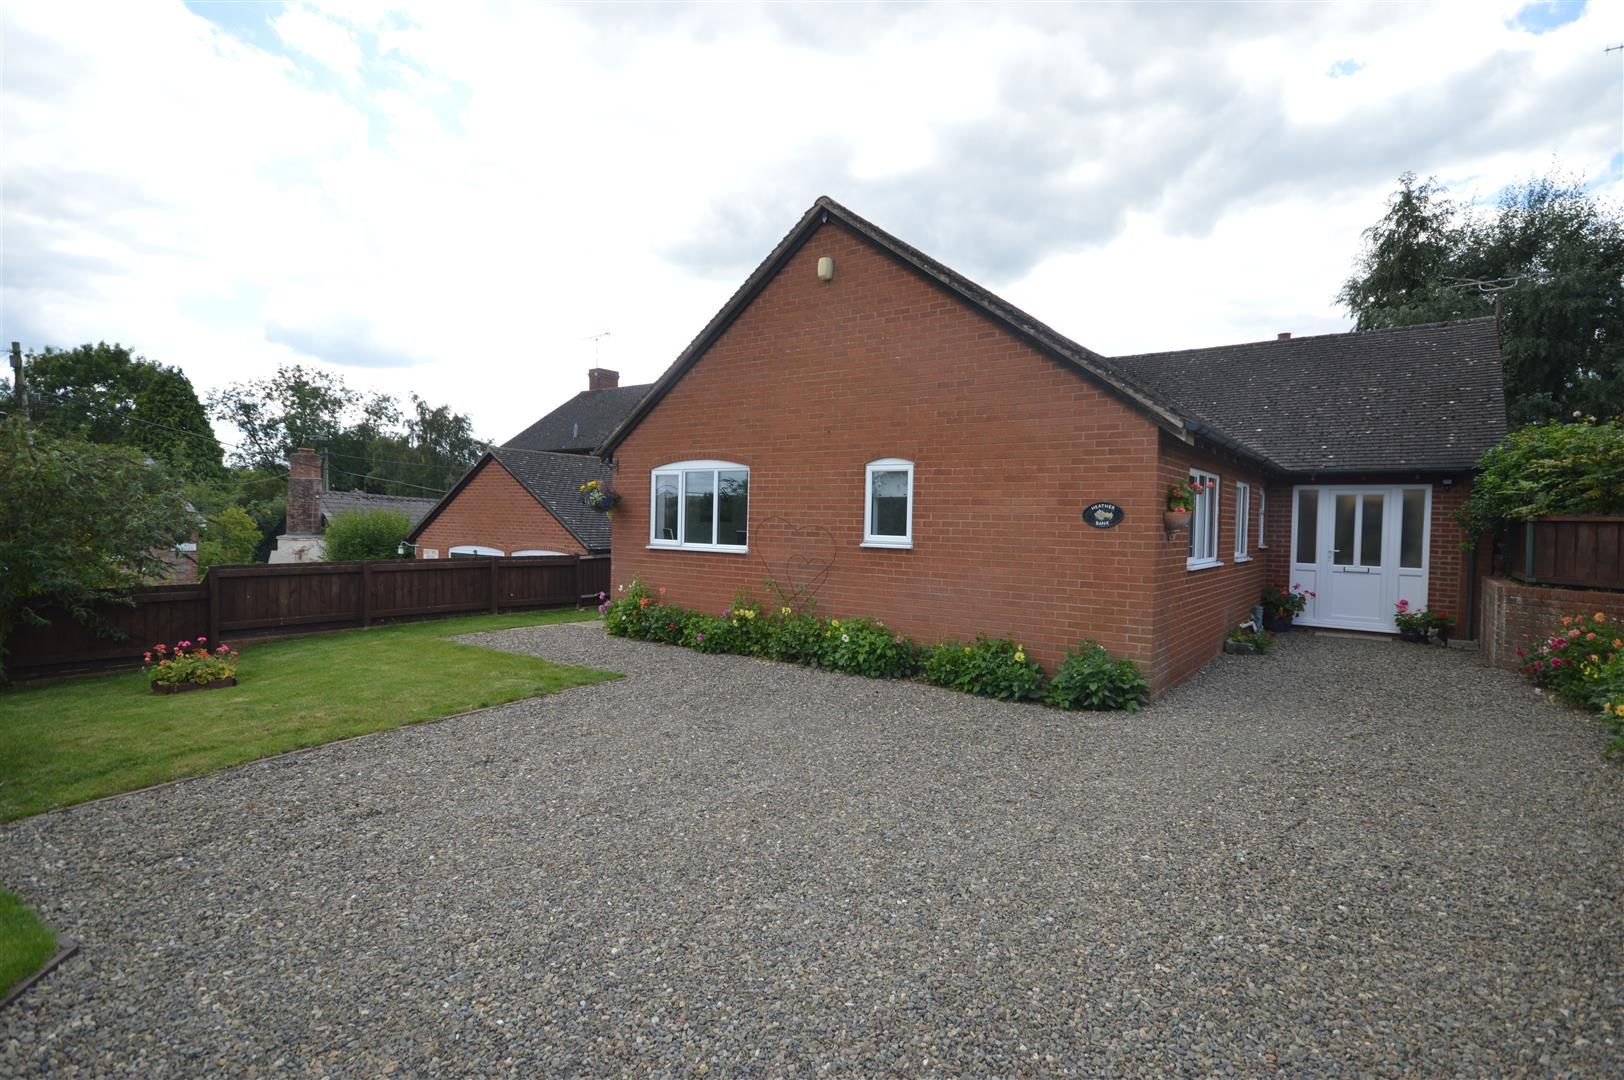 3 bed detached-bungalow for sale in Luston, HR6